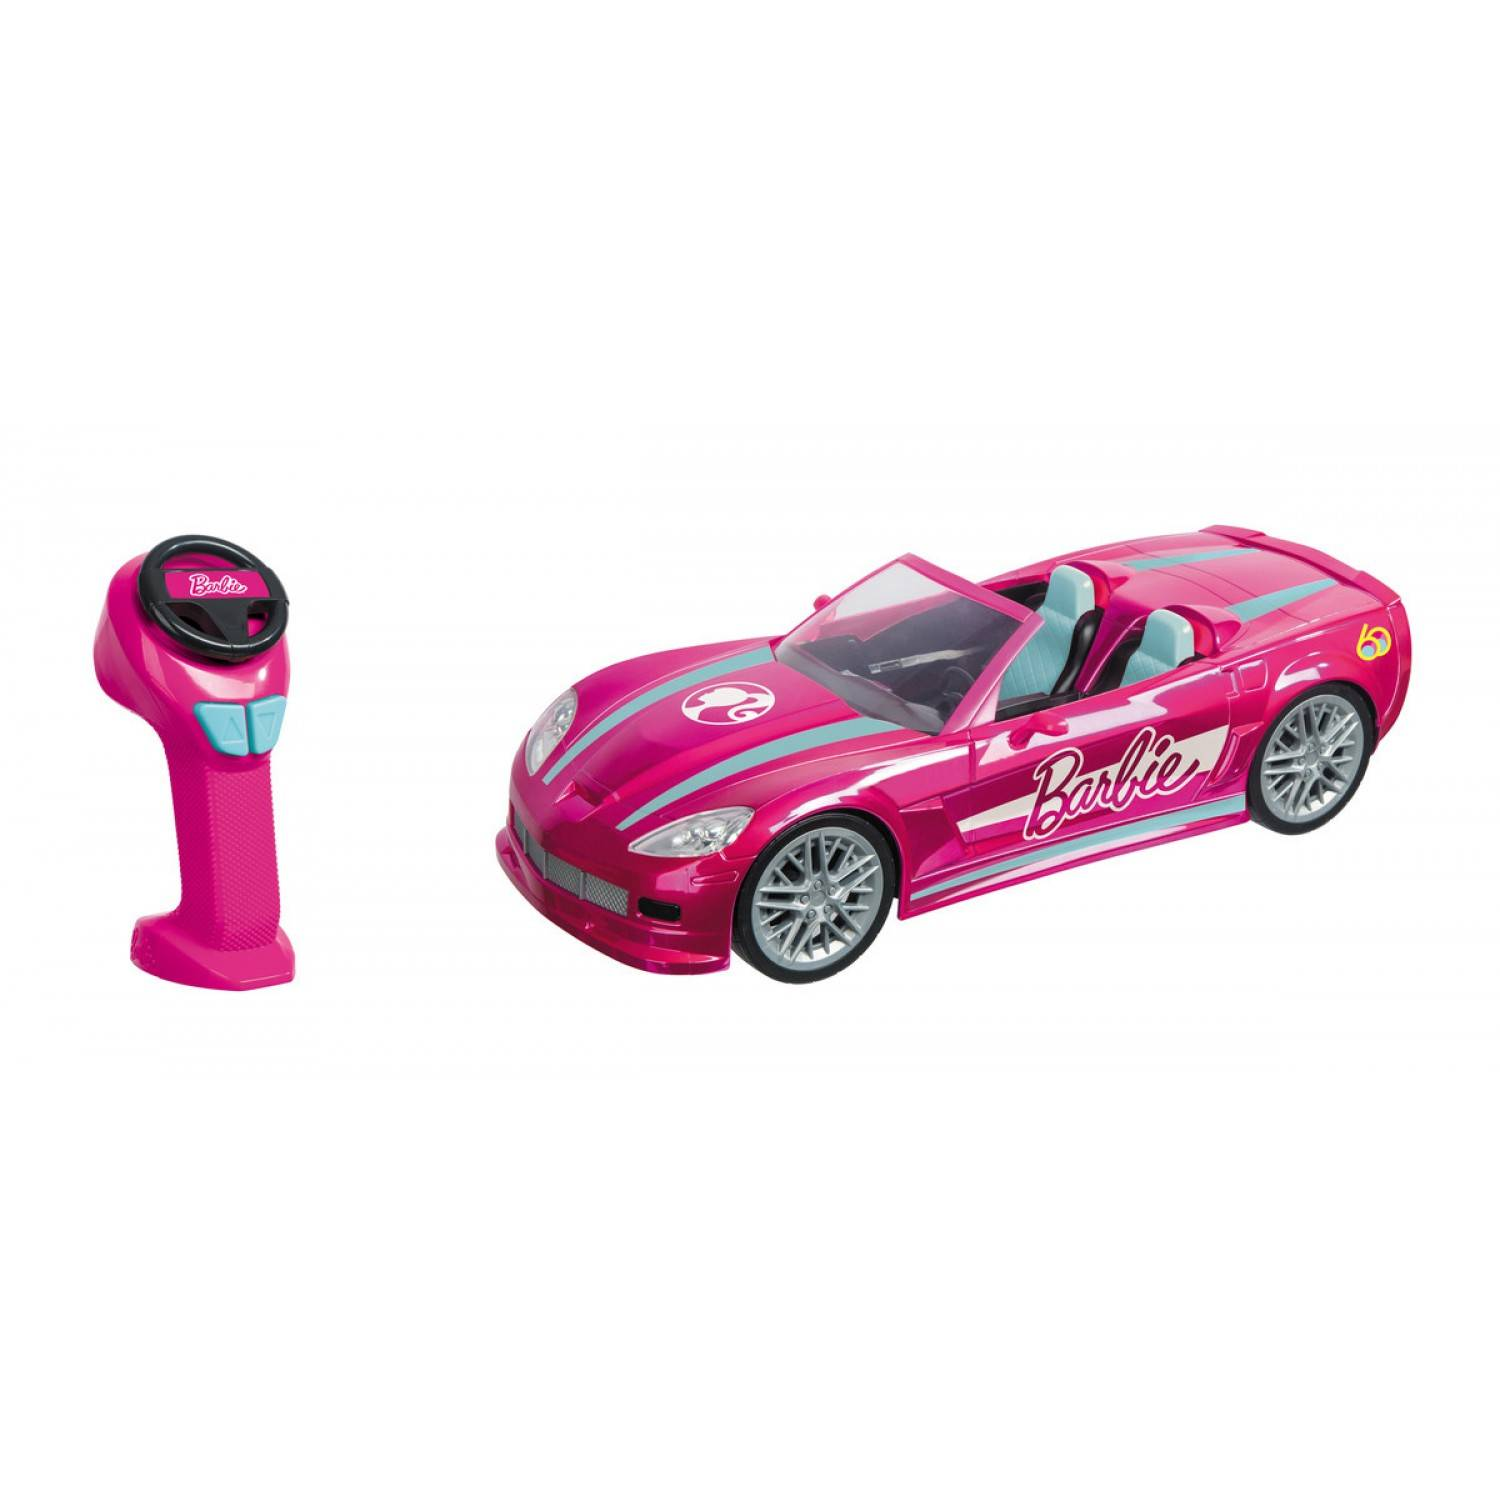 barbie macchinina radiocomandata mondo barbie dream car outlet non funzionante